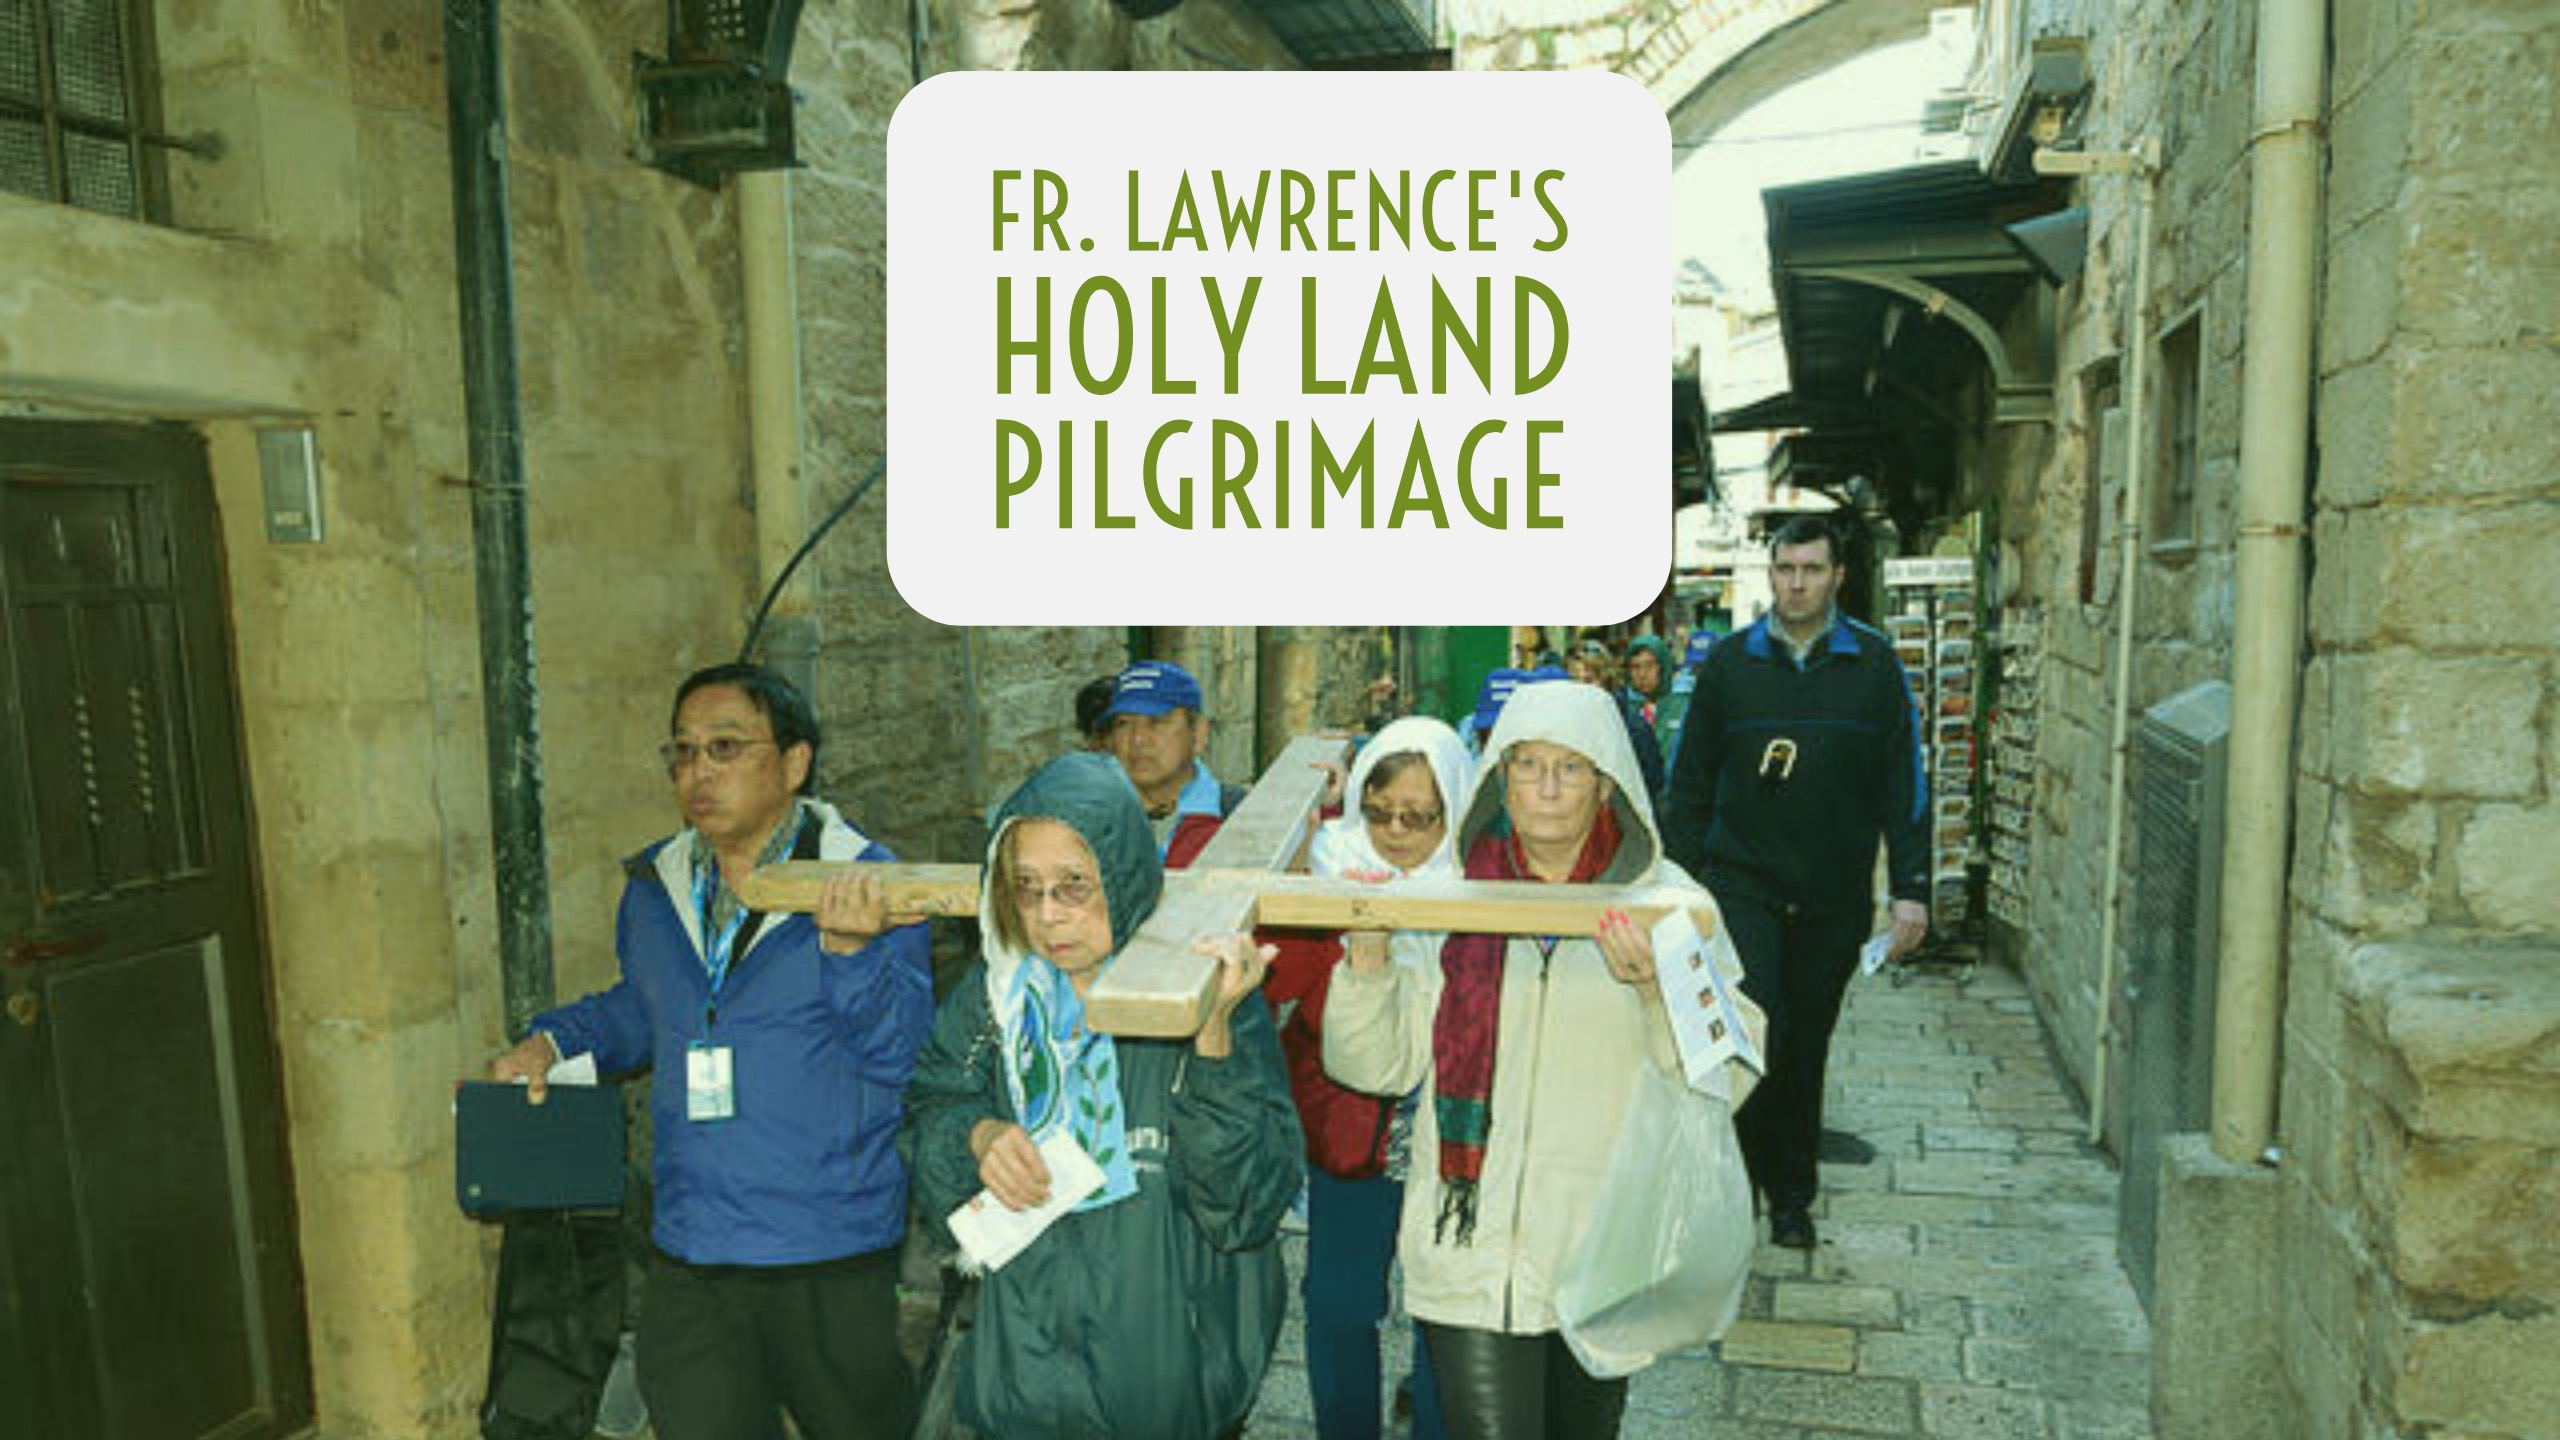 Click to view Fr. Lawrence's pilgrimage photo albums